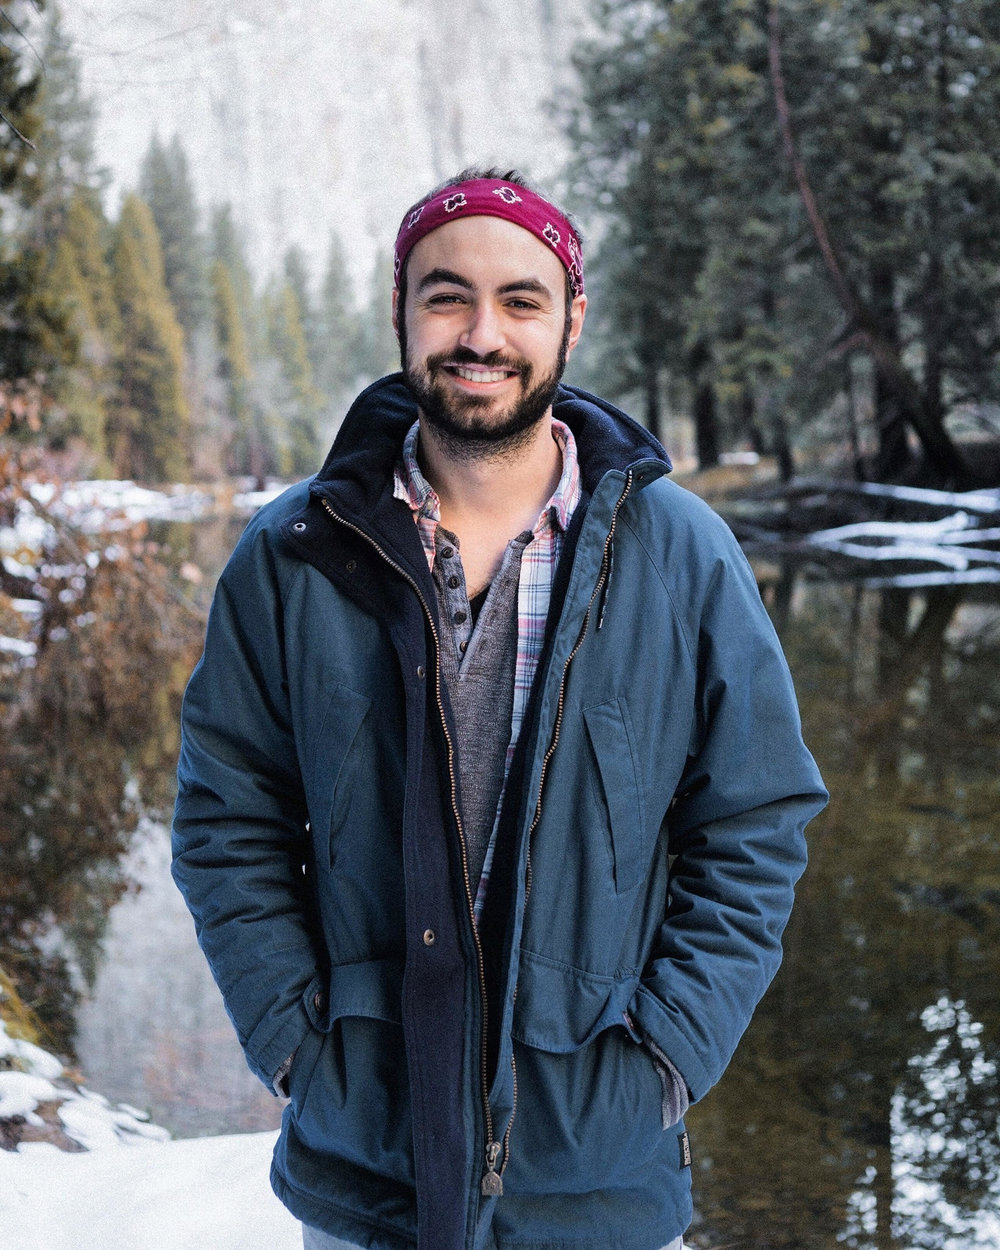 """About - My name is Ryan Resatka. I'm a 28 year-old adventure photographer based out of Los Angeles, California. I have a passion for the outdoors and traveling. I also love to hike with friends, camp under the stars, swim in the bluest of waters, and plan the most epic road trips imaginable.Four years ago I moved from Boston, Massachusetts to California nearly on a whim. I felt that it was time to make a drastic change in my life, so I did. That move inspired me to finally explore more of our world, and pushed me to the very limits of my comfort zone. This exploration further lead to curiosity, so I relentlessly continued on with consecutive adventure after adventure.Since my initial life changing move I've been to over forty states in the US, twenty-five national parks, and have visited twenty countries. Each adventure has had its own unique challenges and experiences, but because of them I've learned to become an expert at what I do. I started photography because I thought these beautiful places I was visiting should be captured in the best quality possible. Through the trial and error of my adventures I forged the backbone of my passion for photography. This passion has allowed me the opportunity to work with so many world class brands, companies, and tourism boards that align with my passion. Whether it be cruising through the arctic tundra, or relaxing at a tropical beach, my goal is to create the absolute best content for companies in a """"next-level"""" way that will allow them to further engage with their audiences and consumers."""